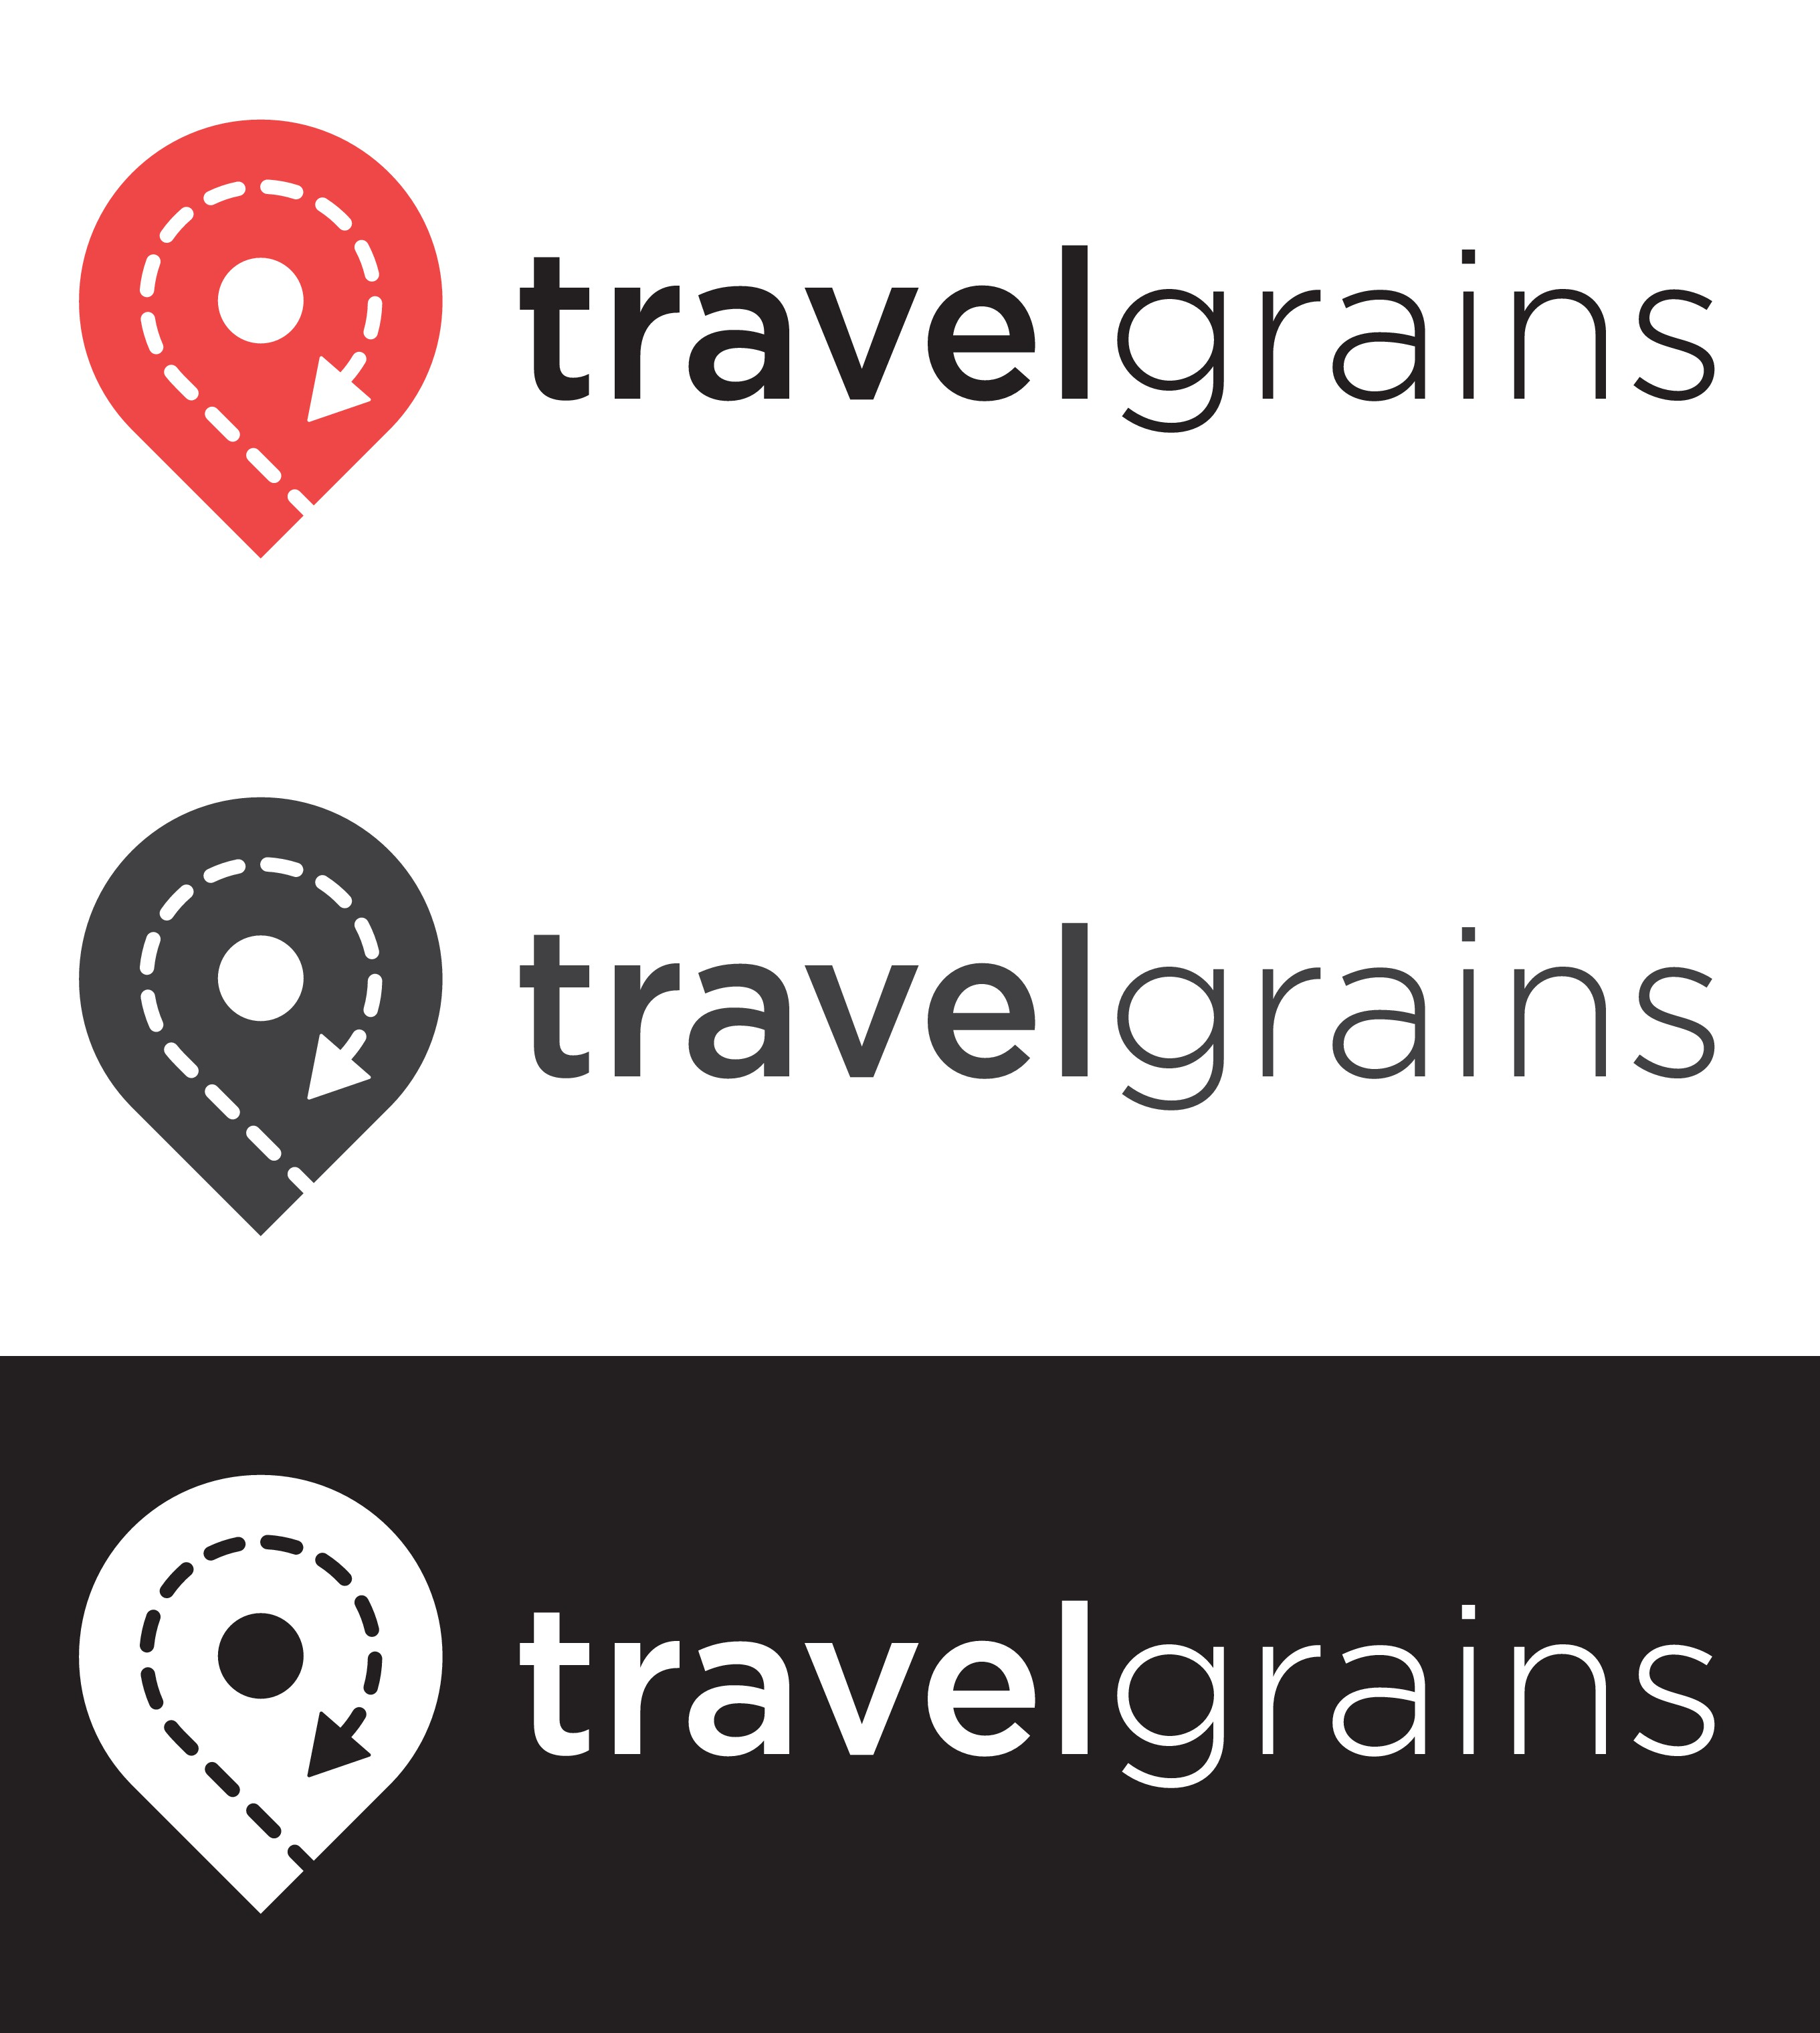 Travelgrains needs a corporate image that inspires adventure.